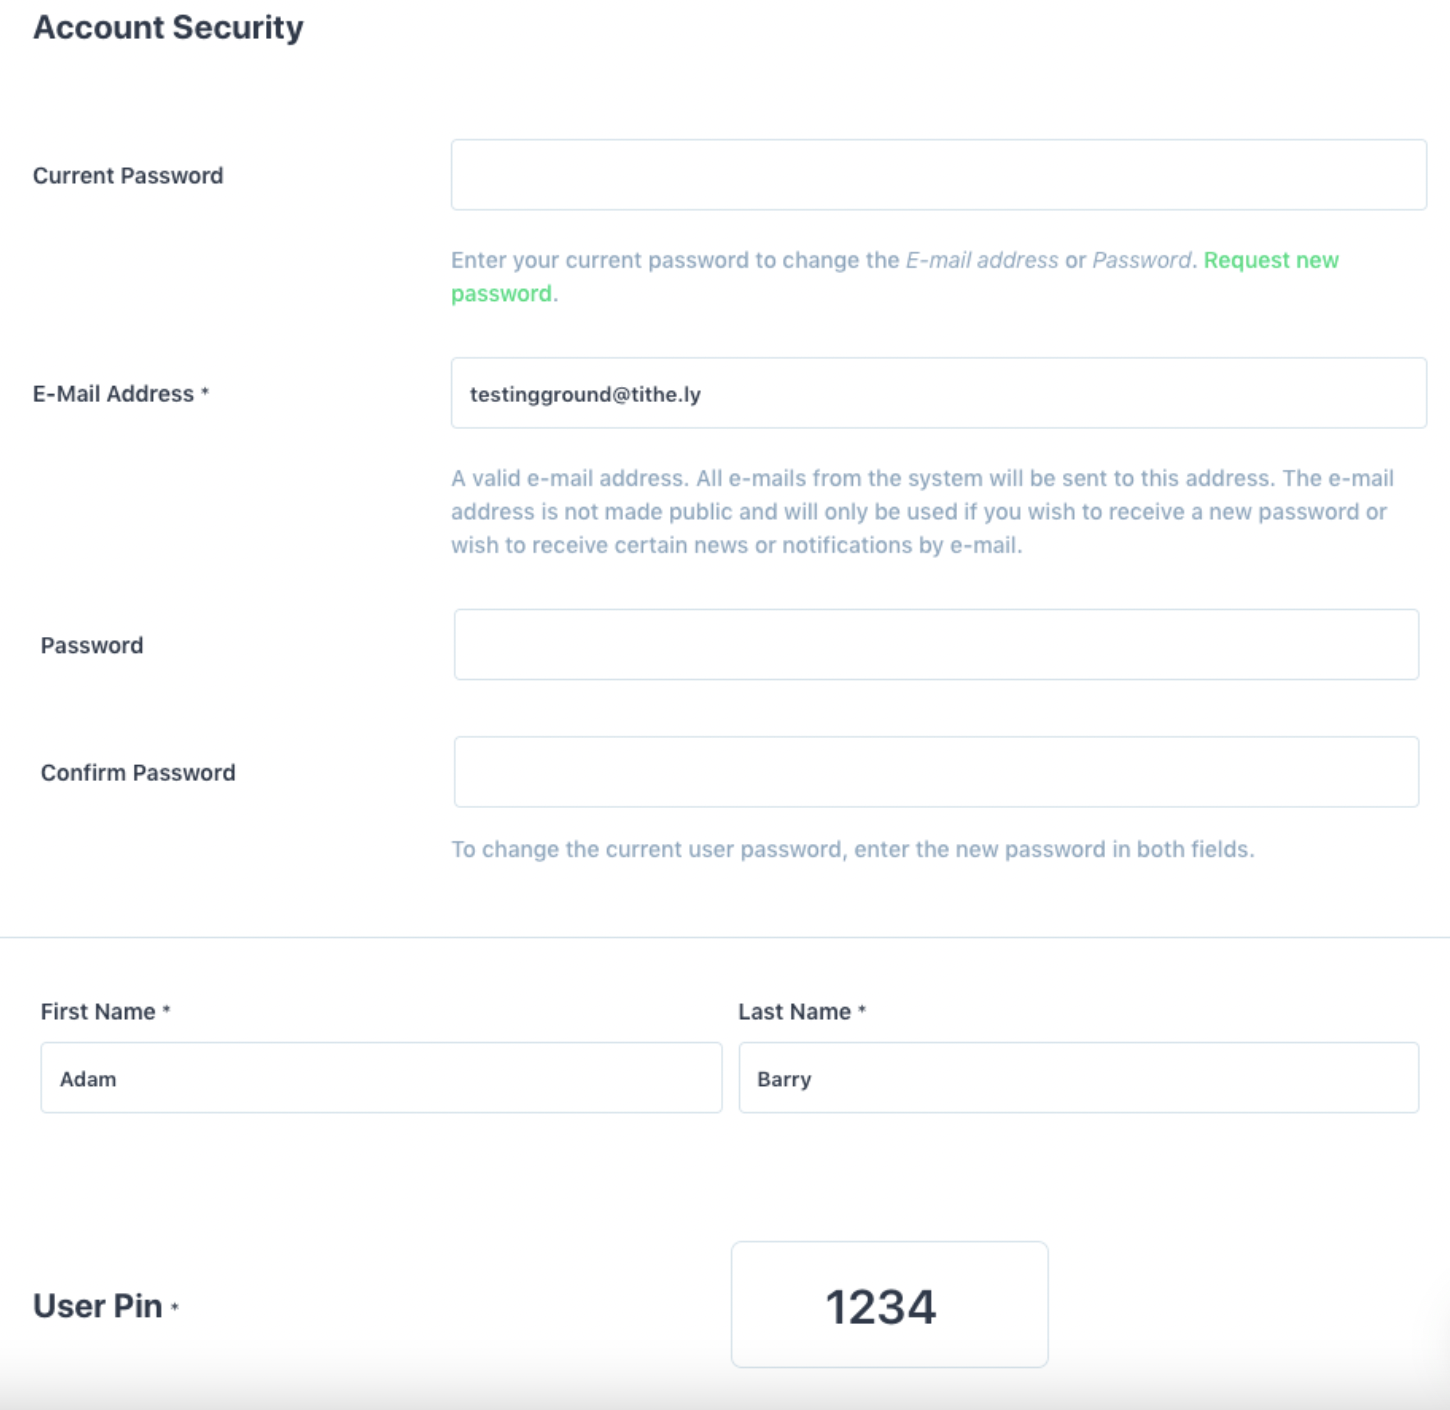 Account Security Change Password, Email, Name and Pin